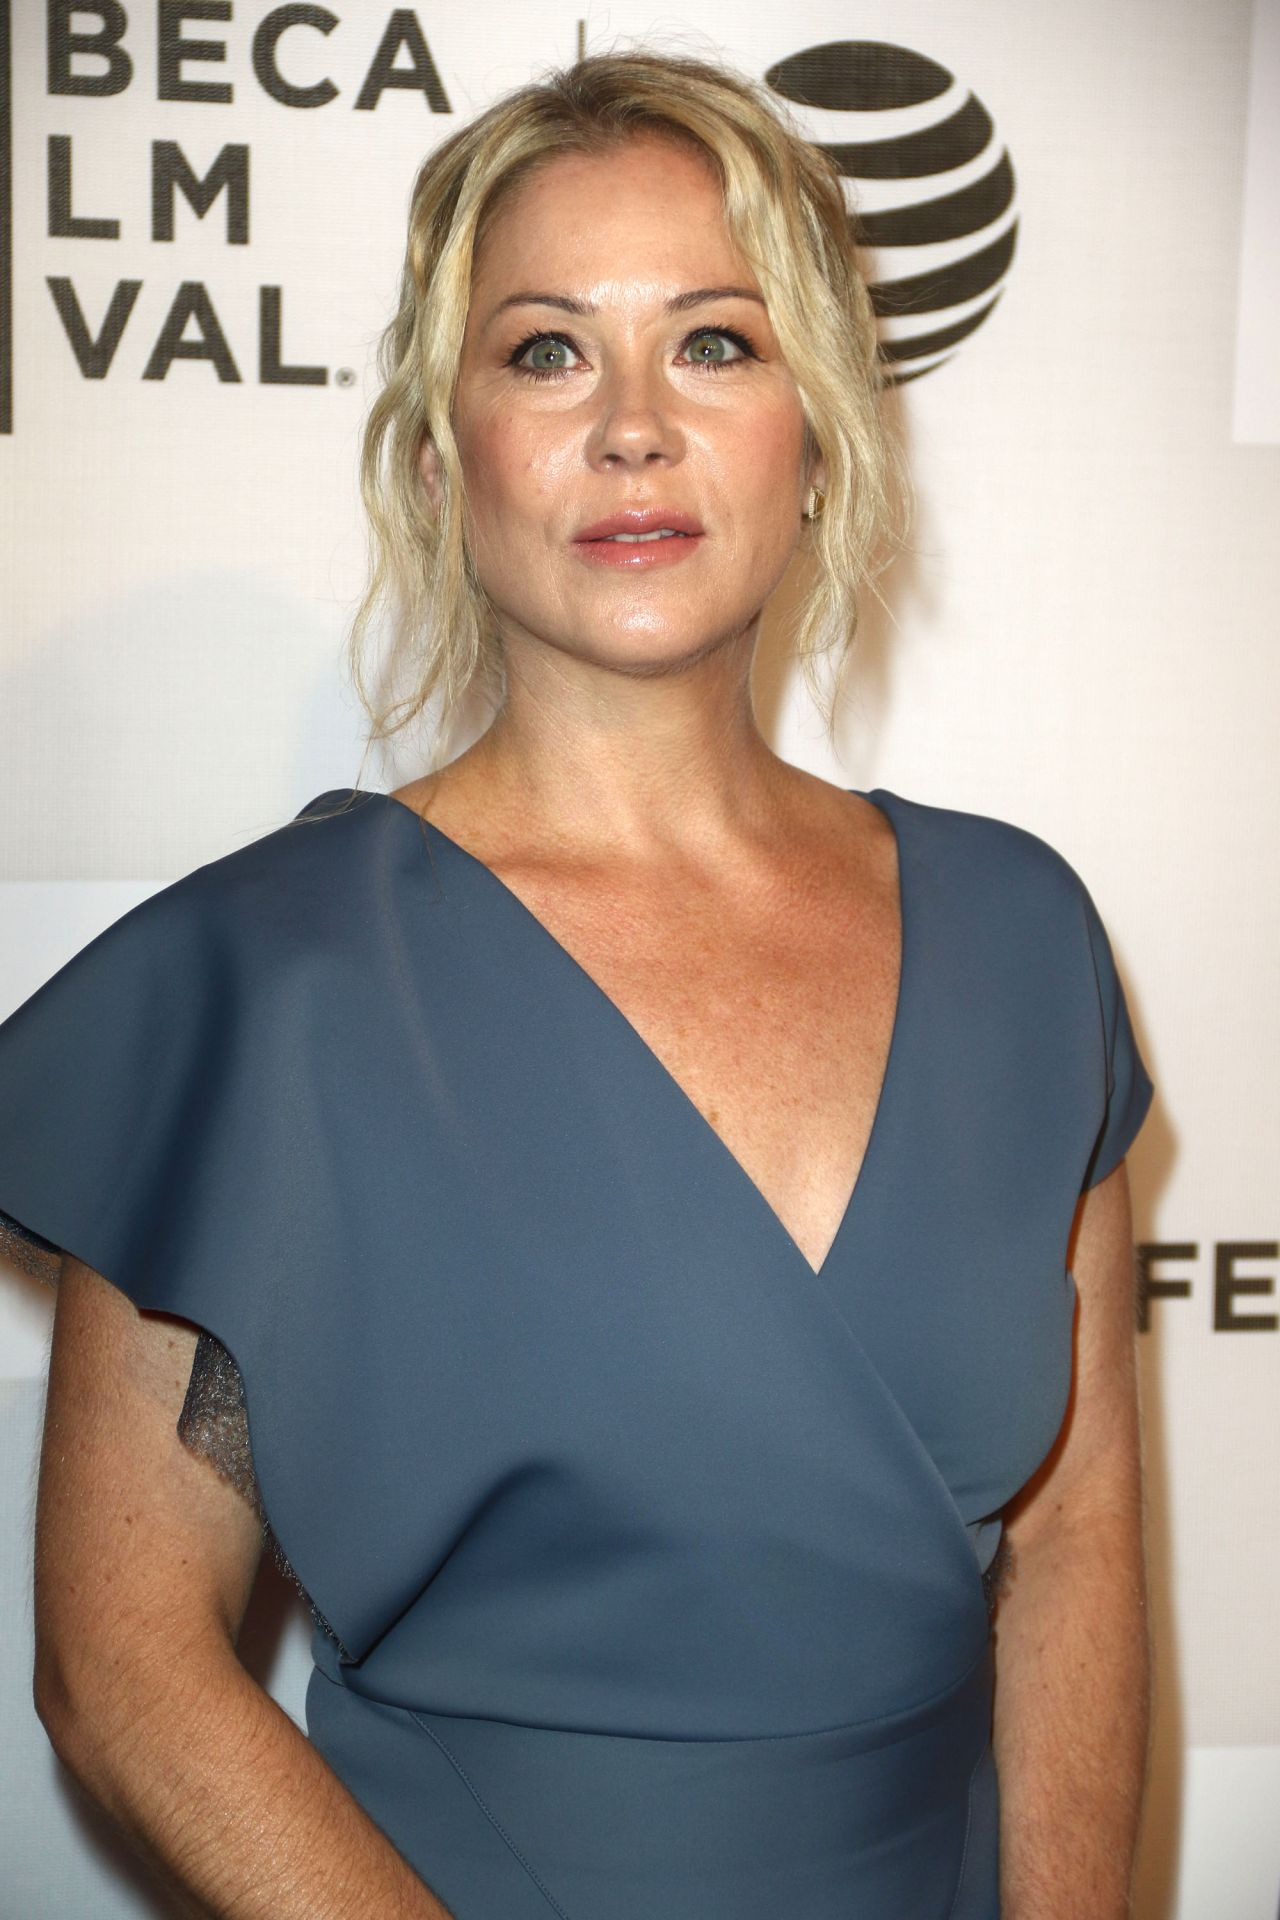 Quick Shout Out To Christina Applegate photo 19